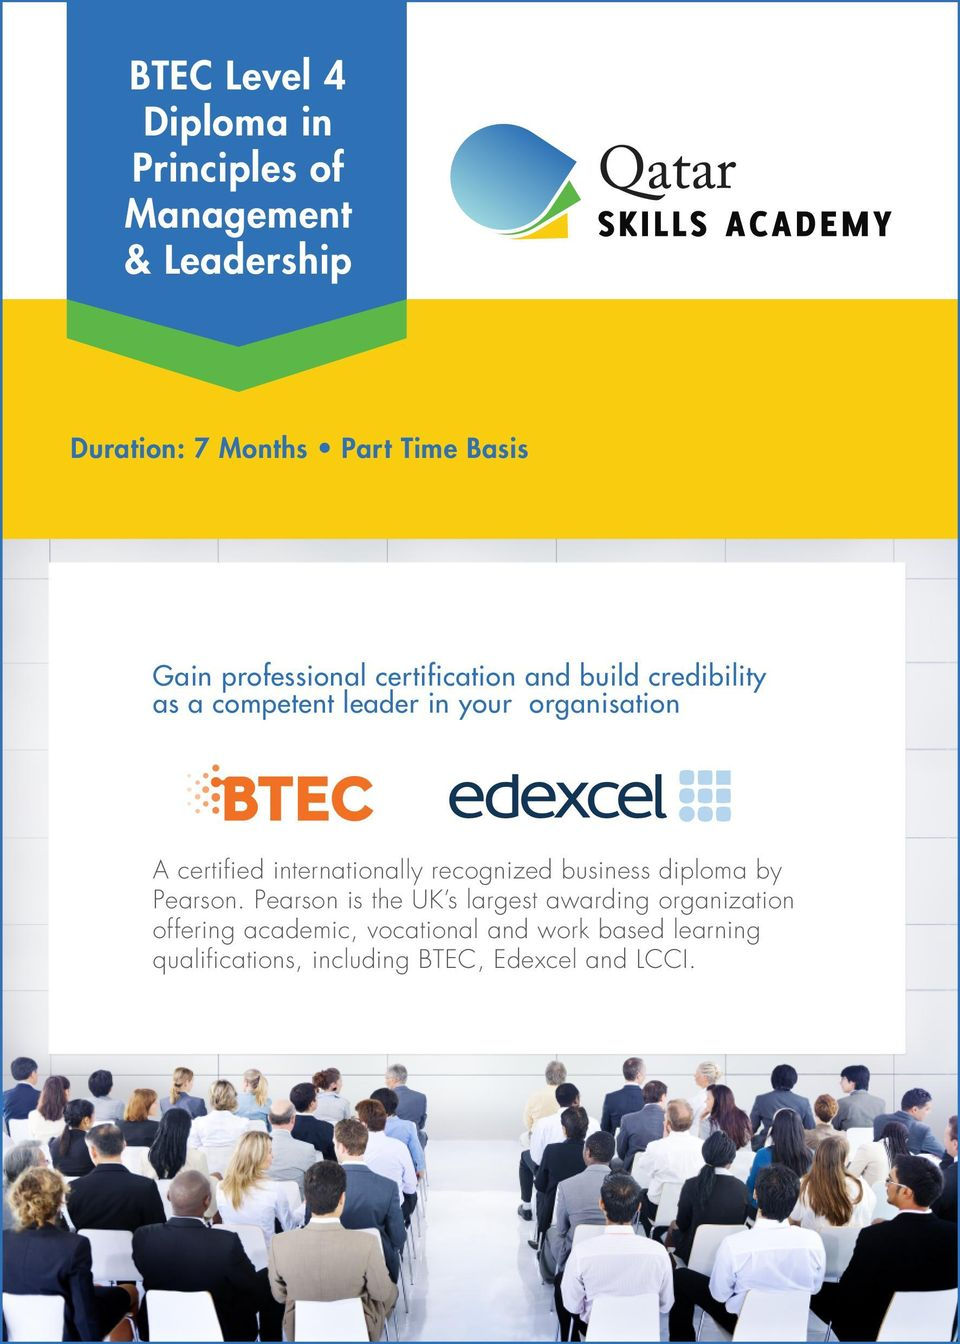 internationally recognized business diploma by Pearson.